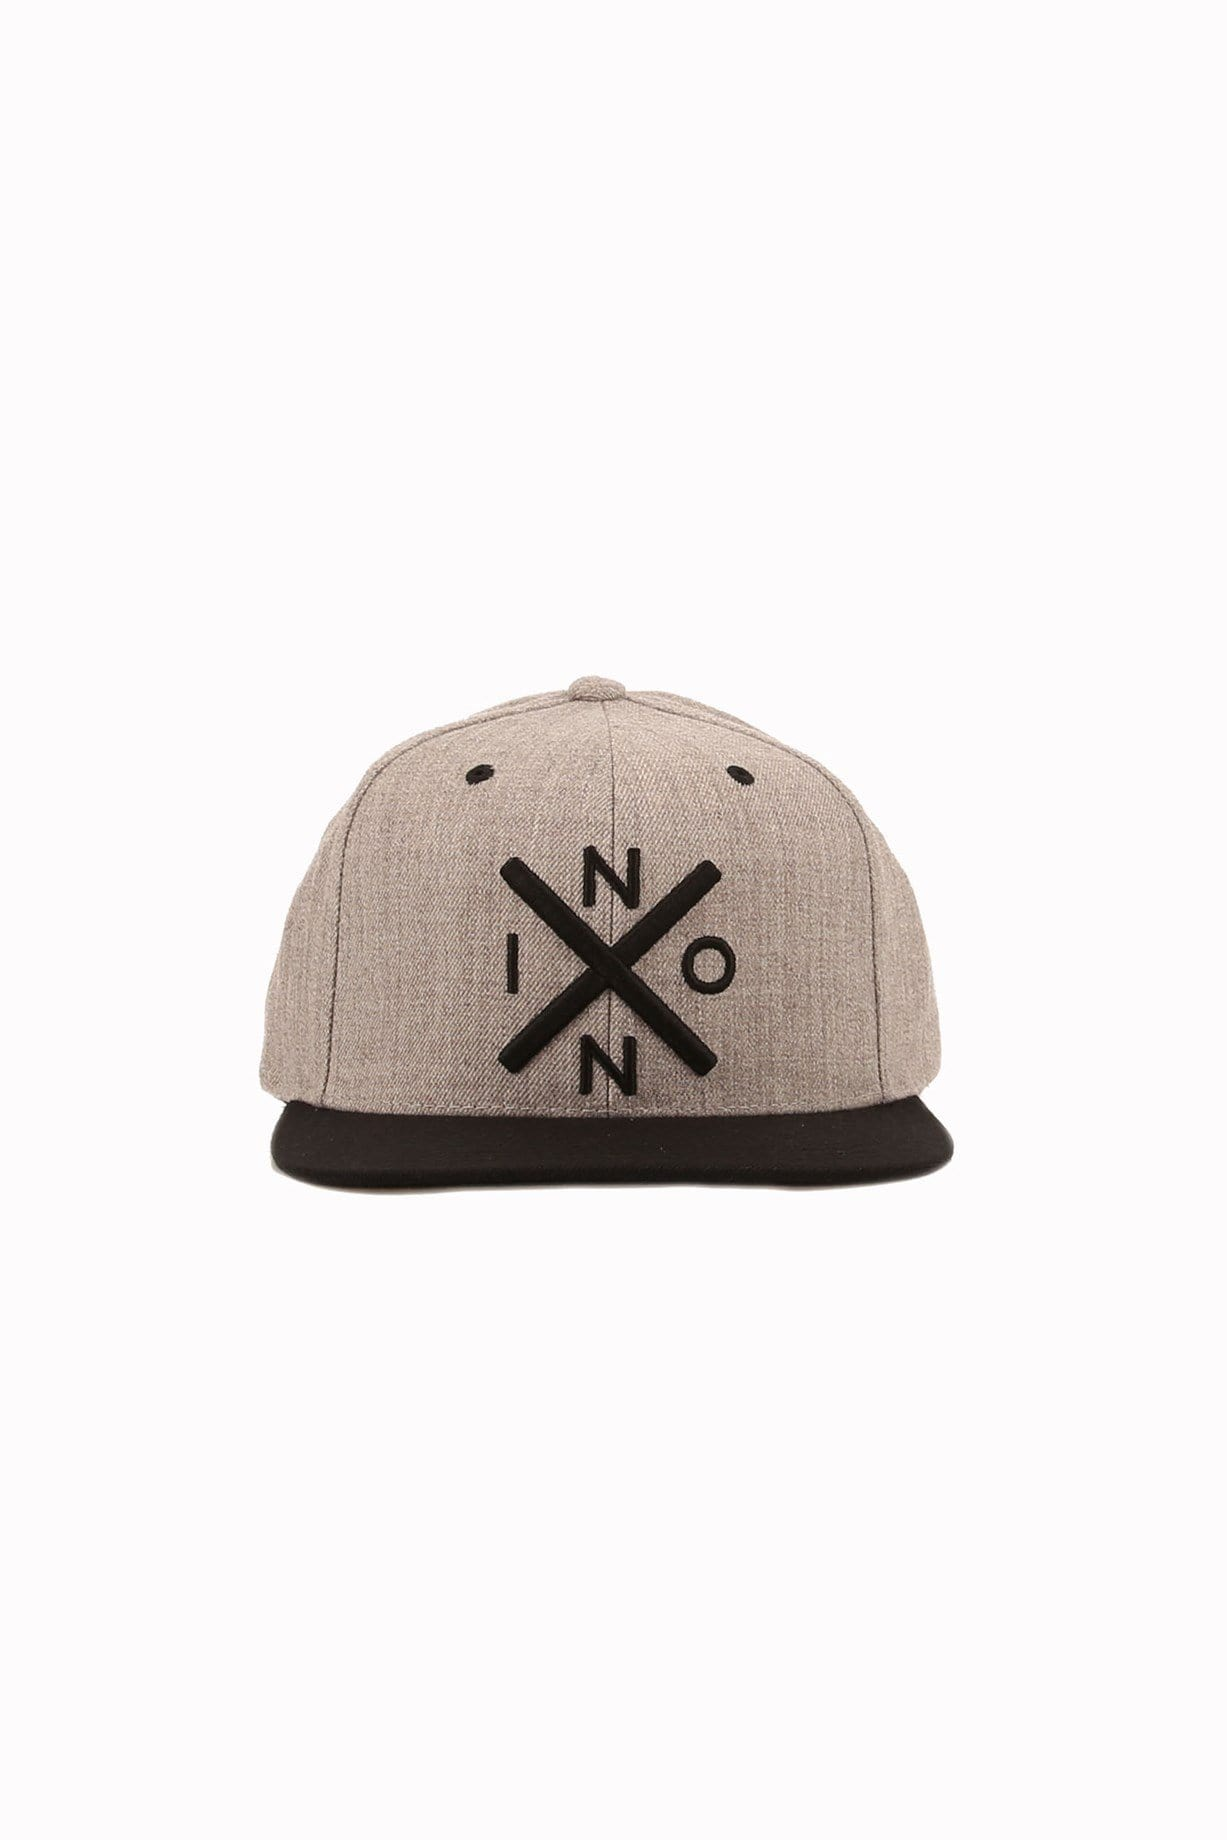 Exchange Snapback Heather Grey Black